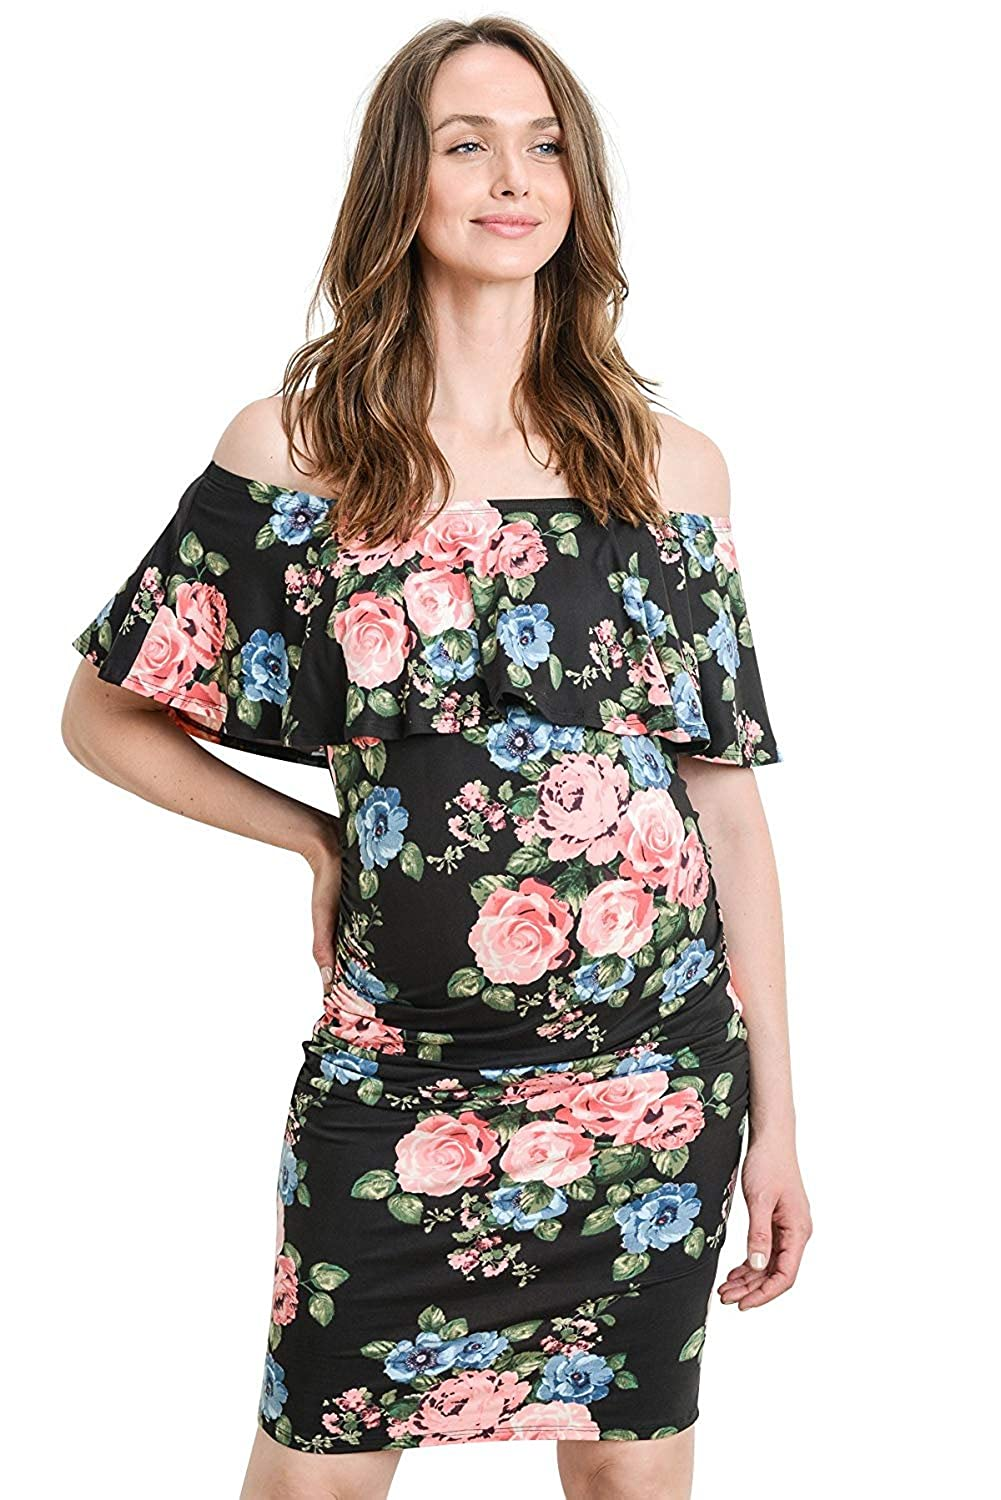 Hello MIZ Womens Floral Ruffle Off Shoulder Maternity Dress Made in USA